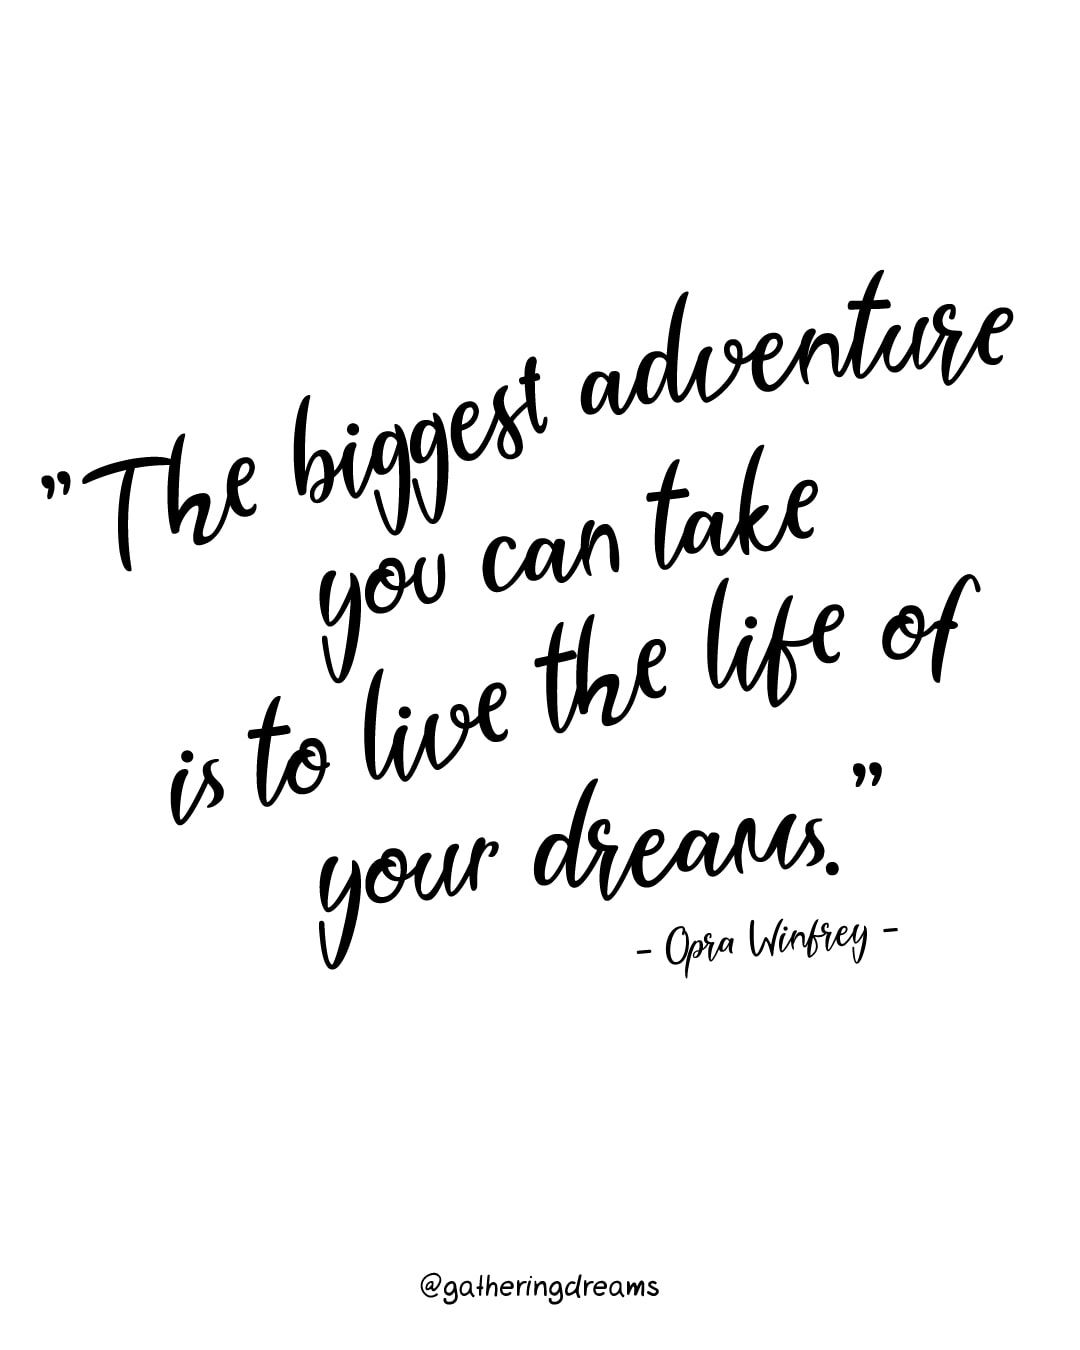 100 Dream Quotes To Inspire You And Motivate You